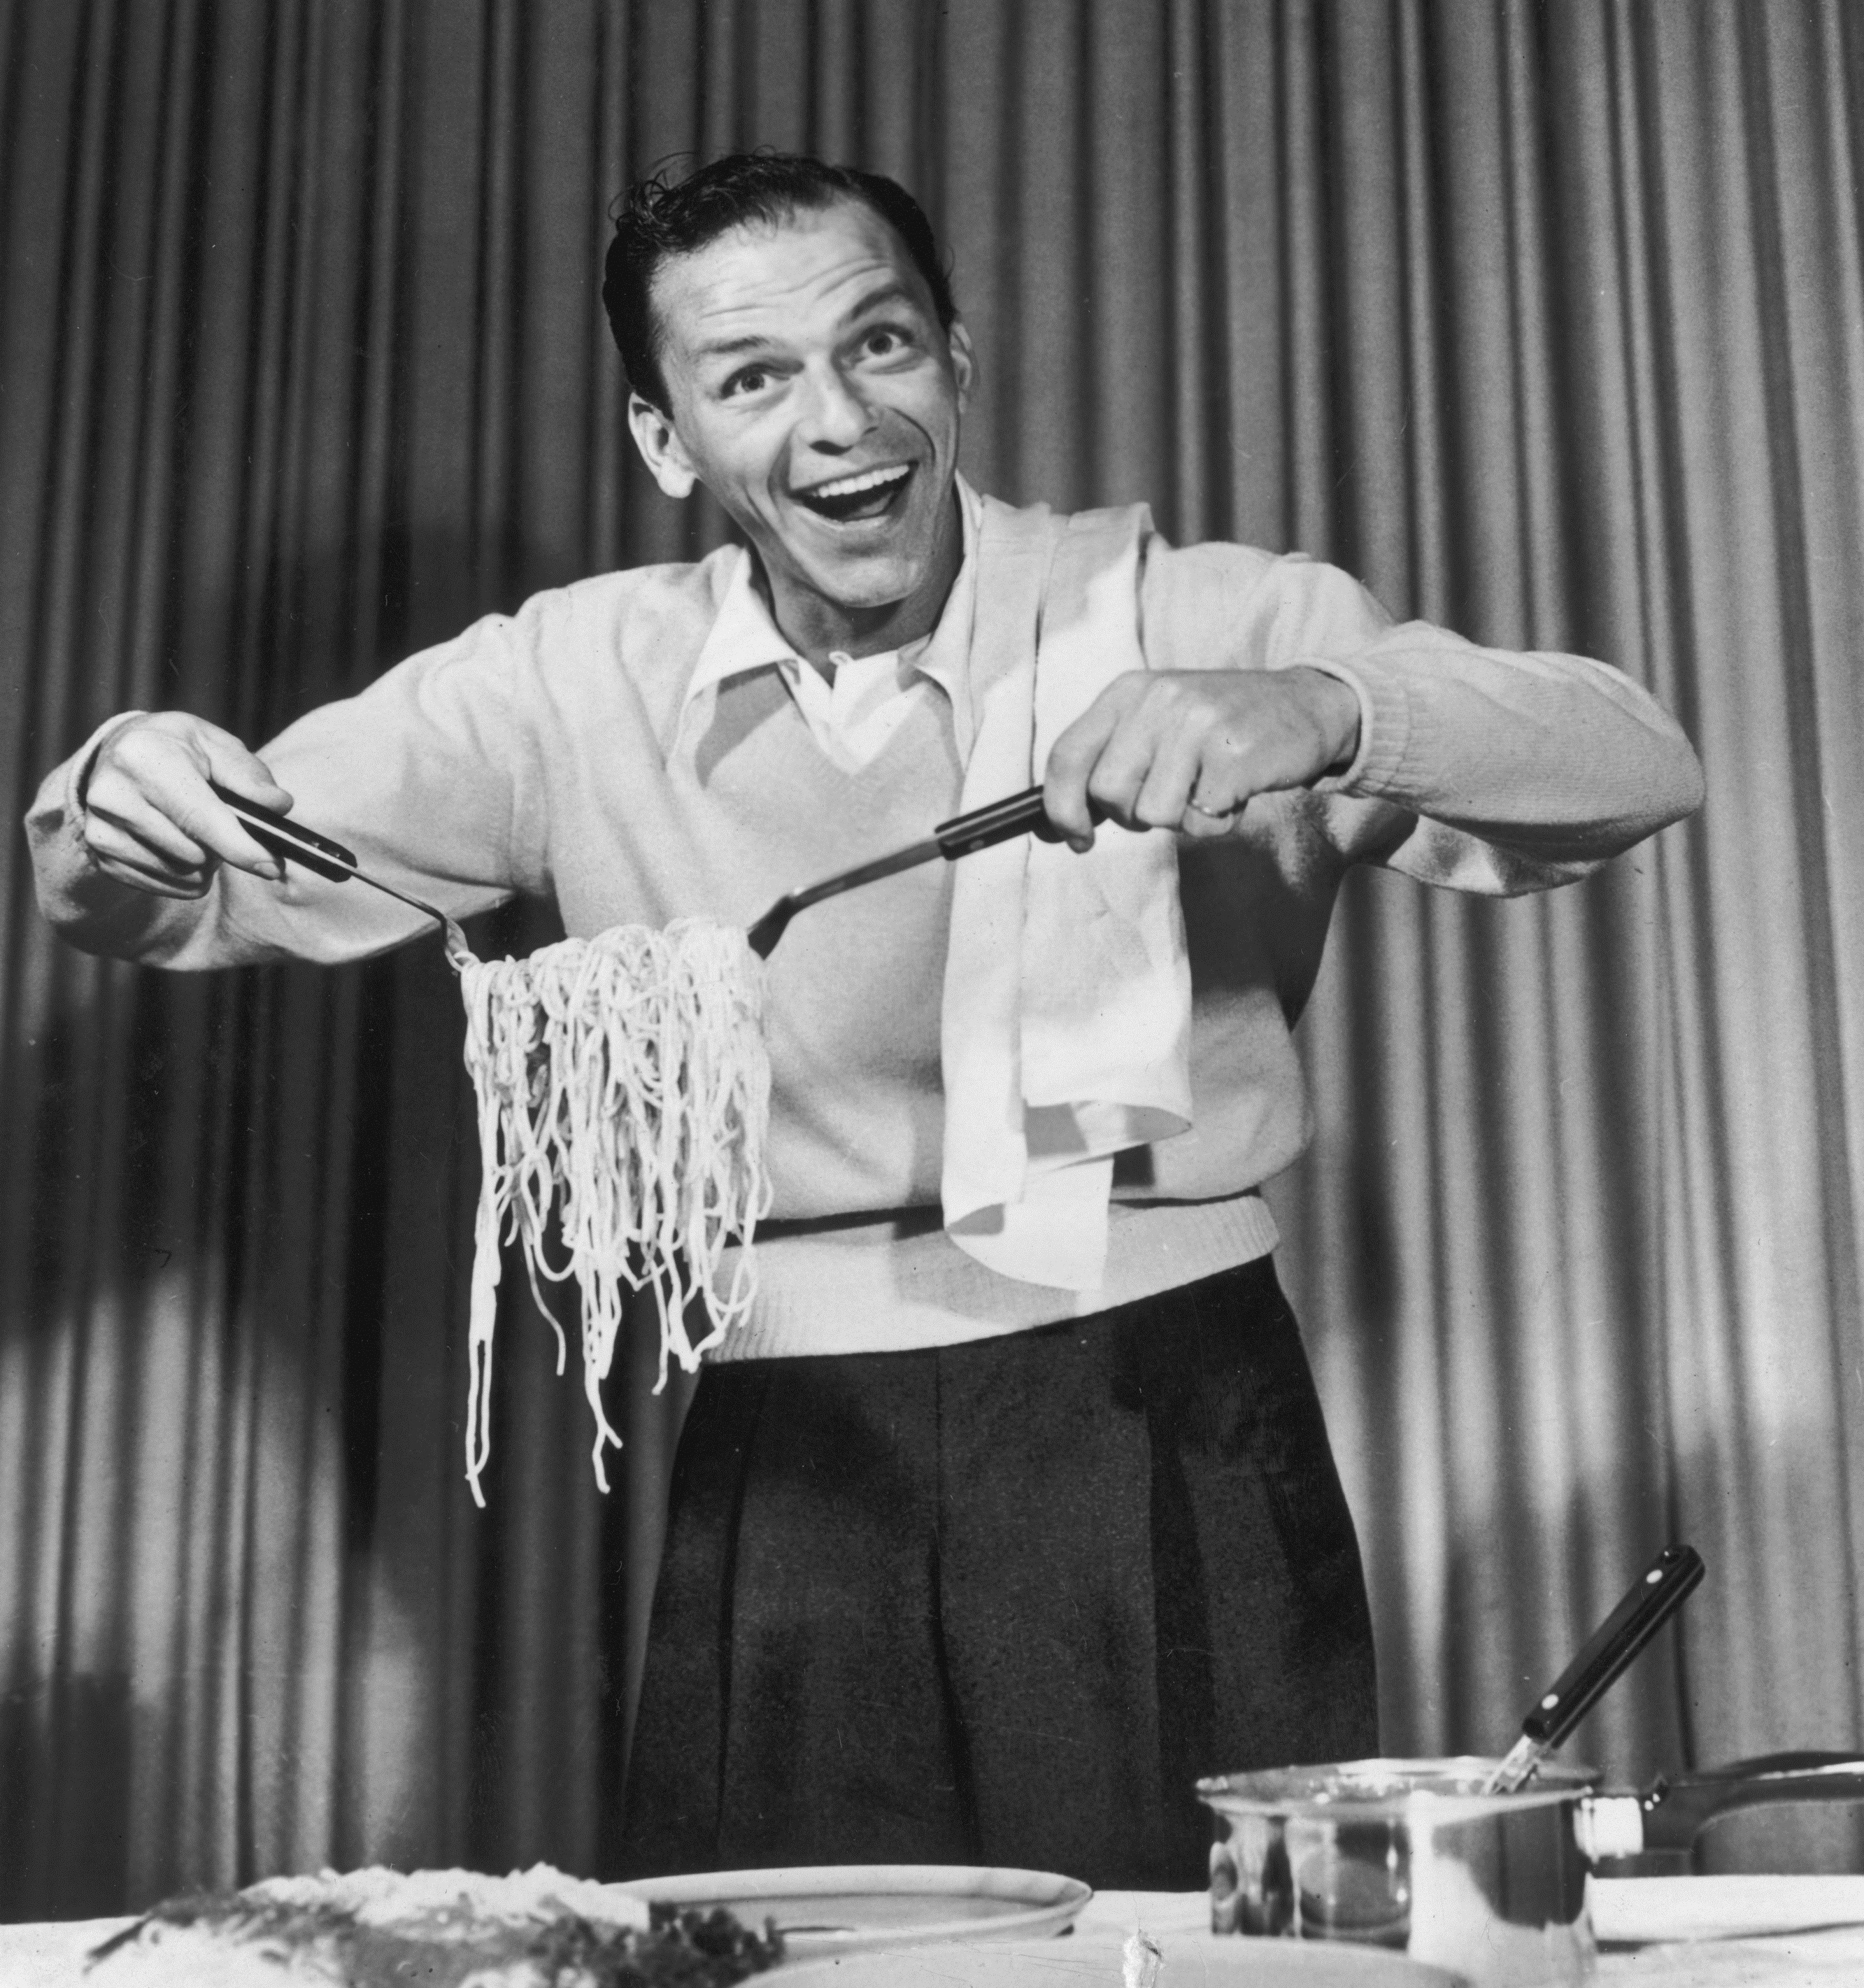 Caption: American actor and singer Frank Sinatra clowning around with spaghetti for an EKCO products commercial on the set of CBS-TV's, 'The Frank Sinatra Show.' , Credit: CBS Photo Archive/Getty